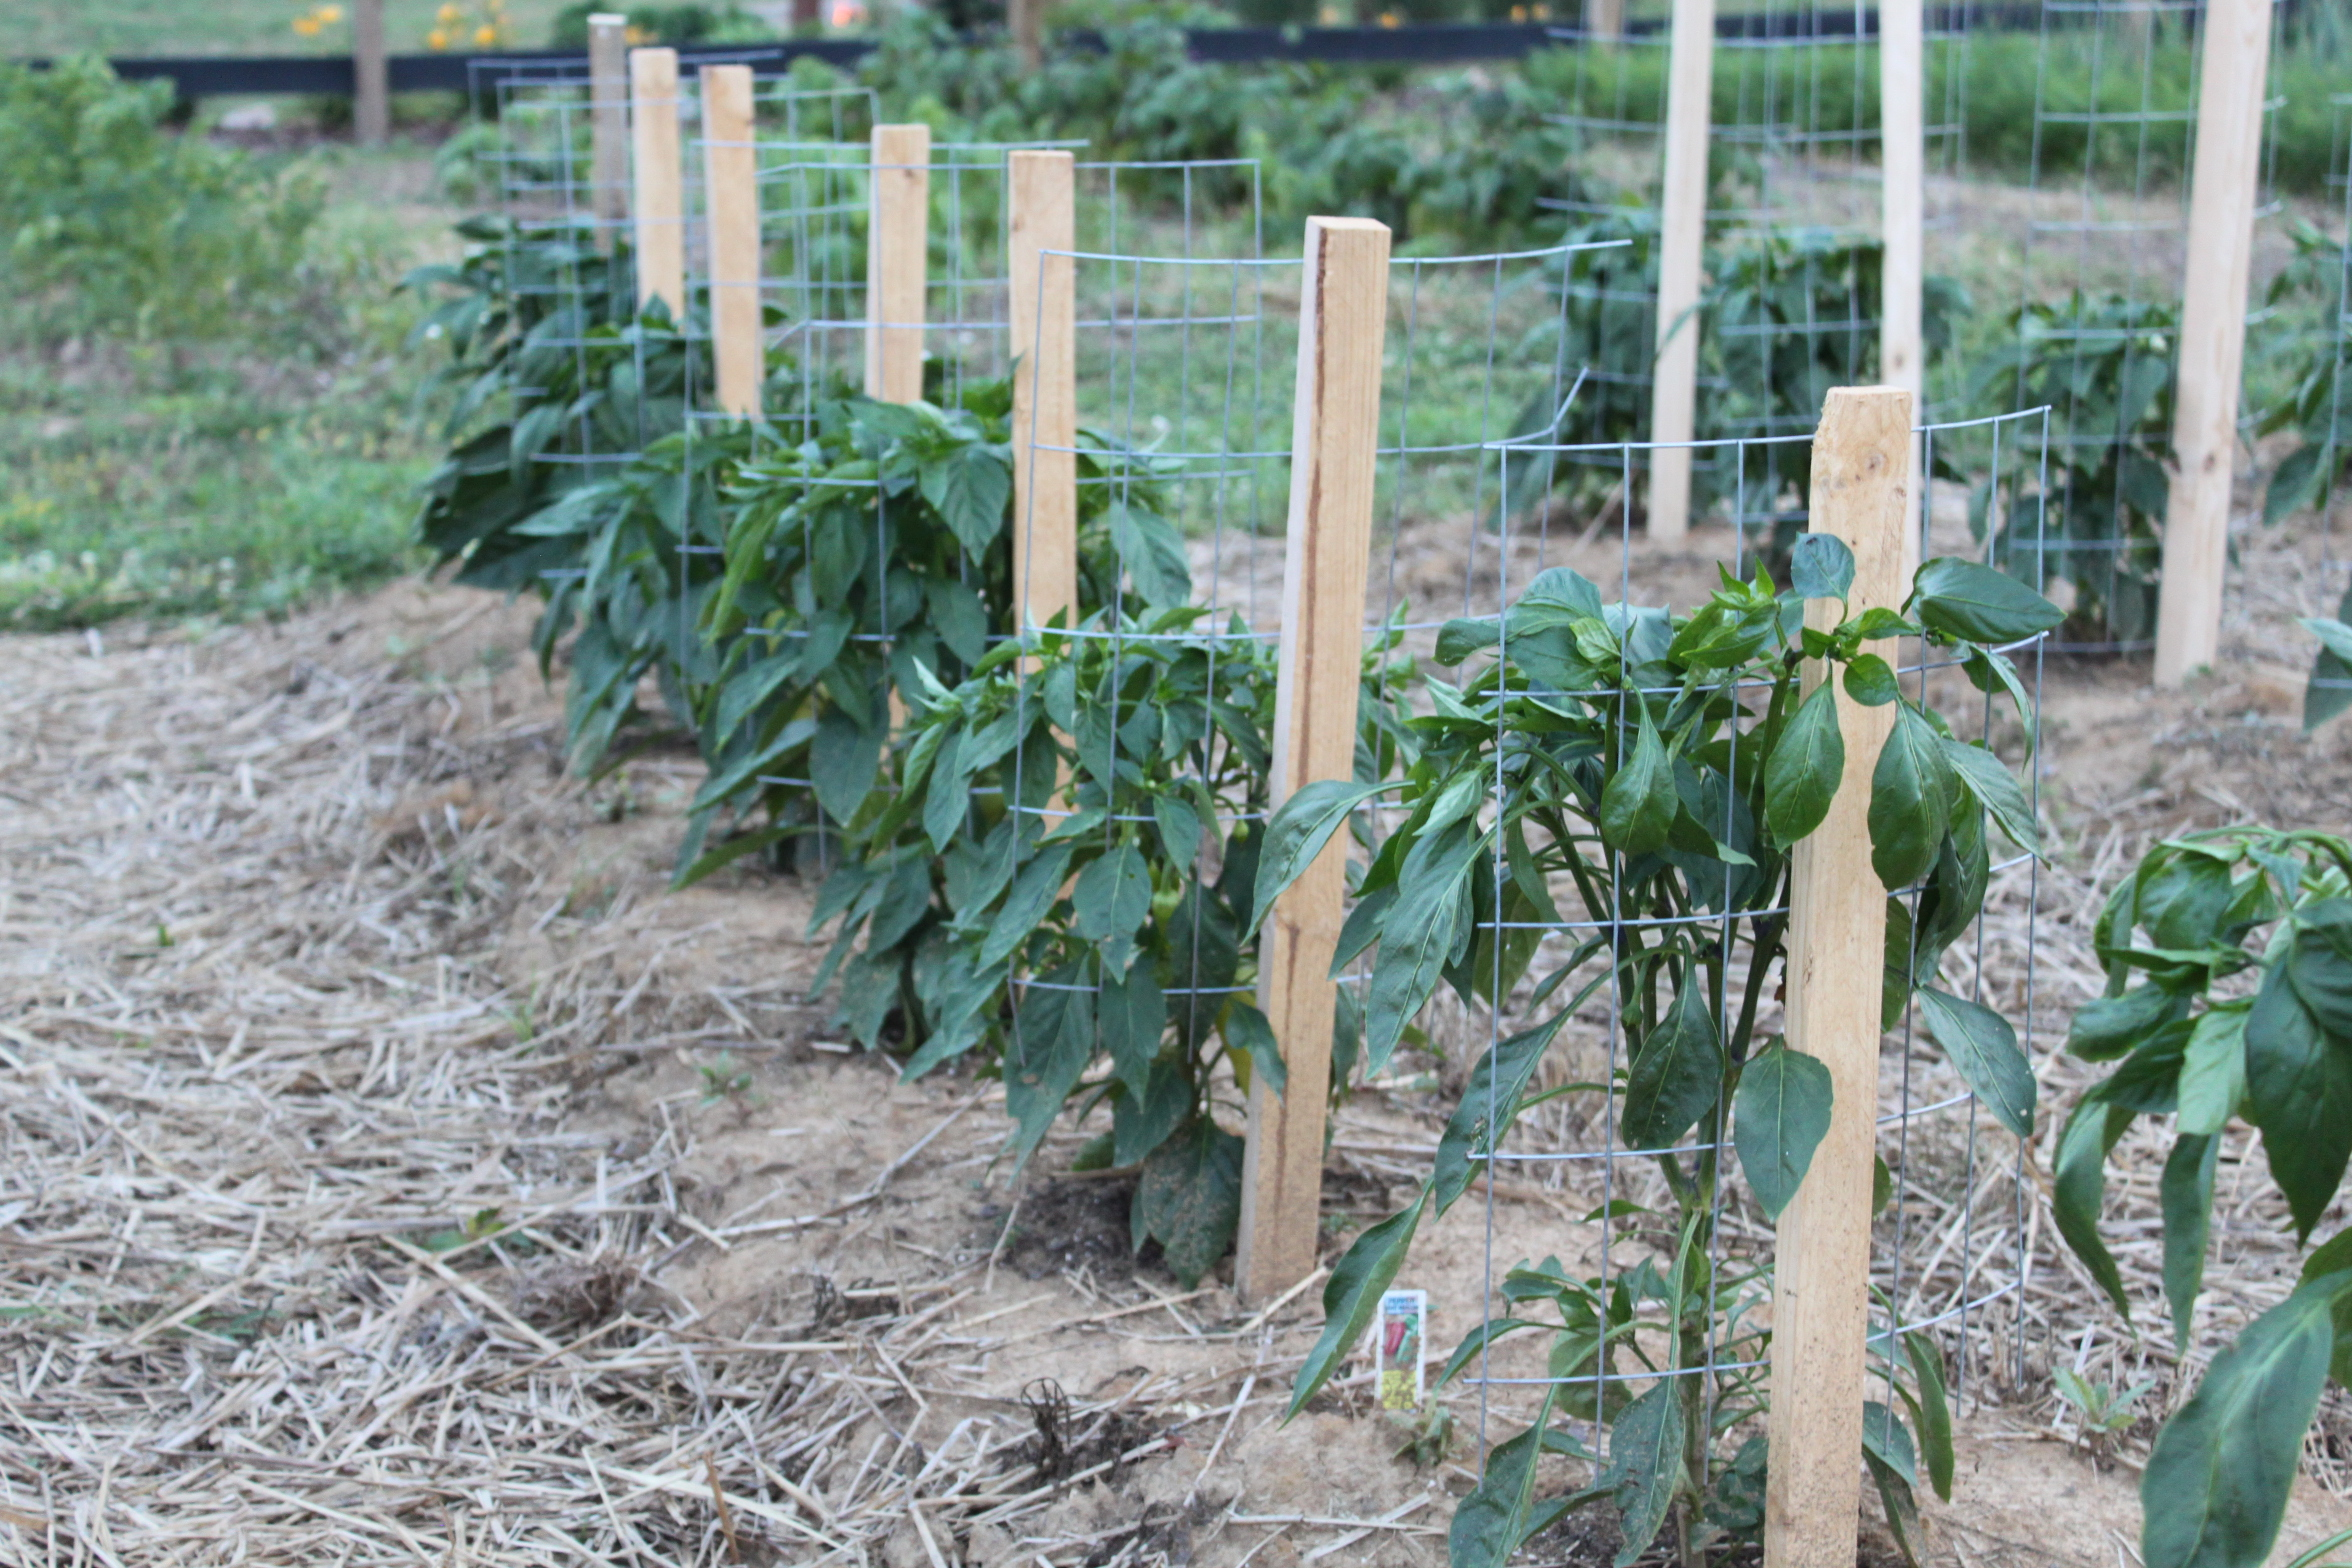 Staking: A Great Way To Stake Your Tomatoes